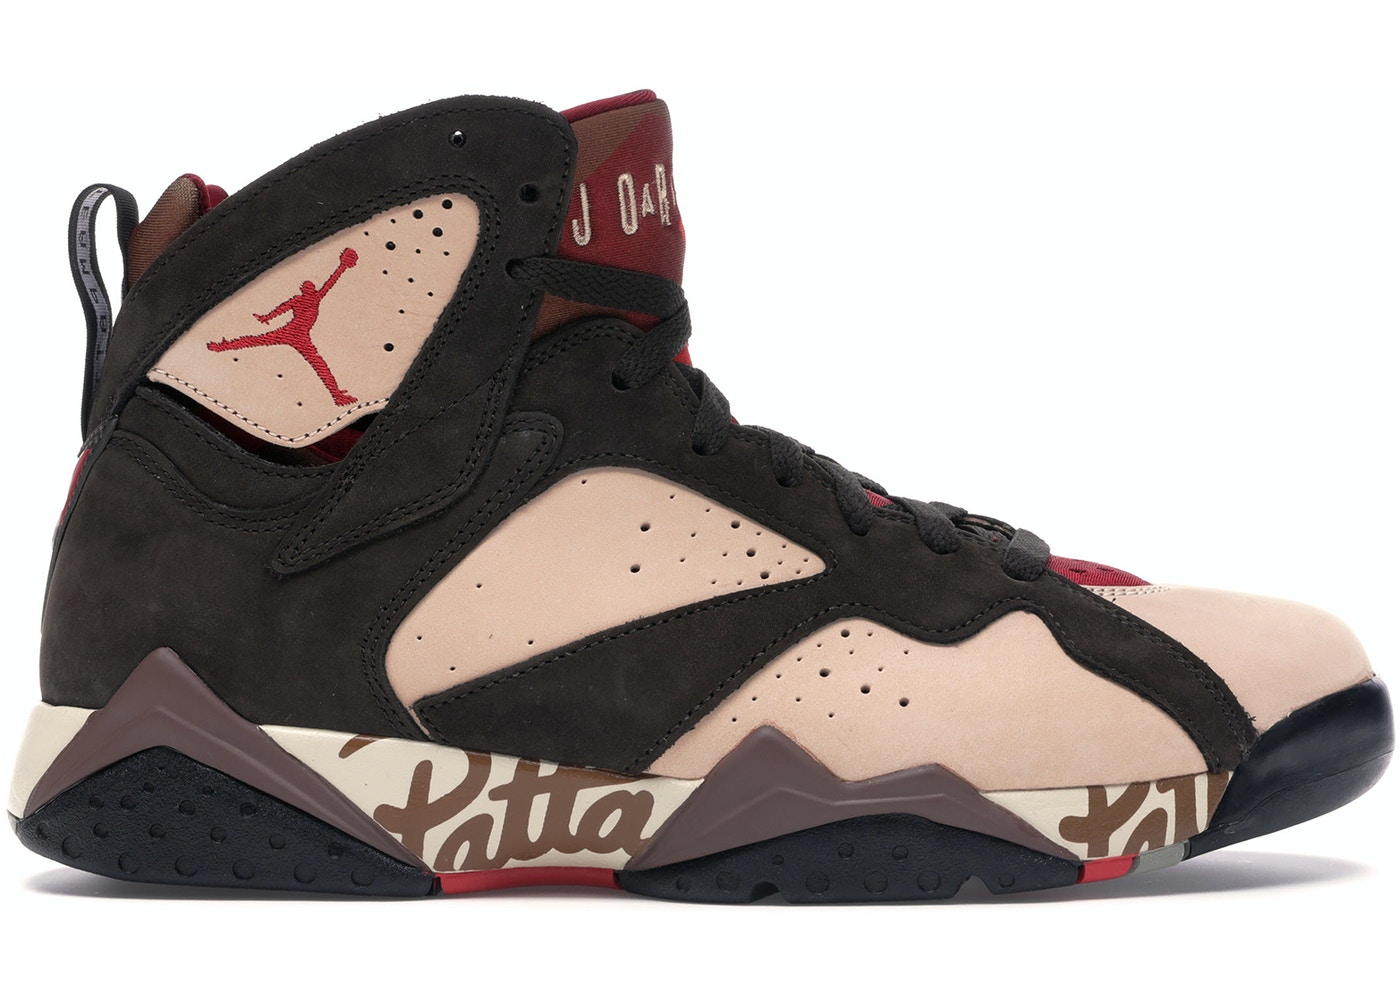 design intemporel b6207 83cd5 Jordan 7 Retro Patta Shimmer